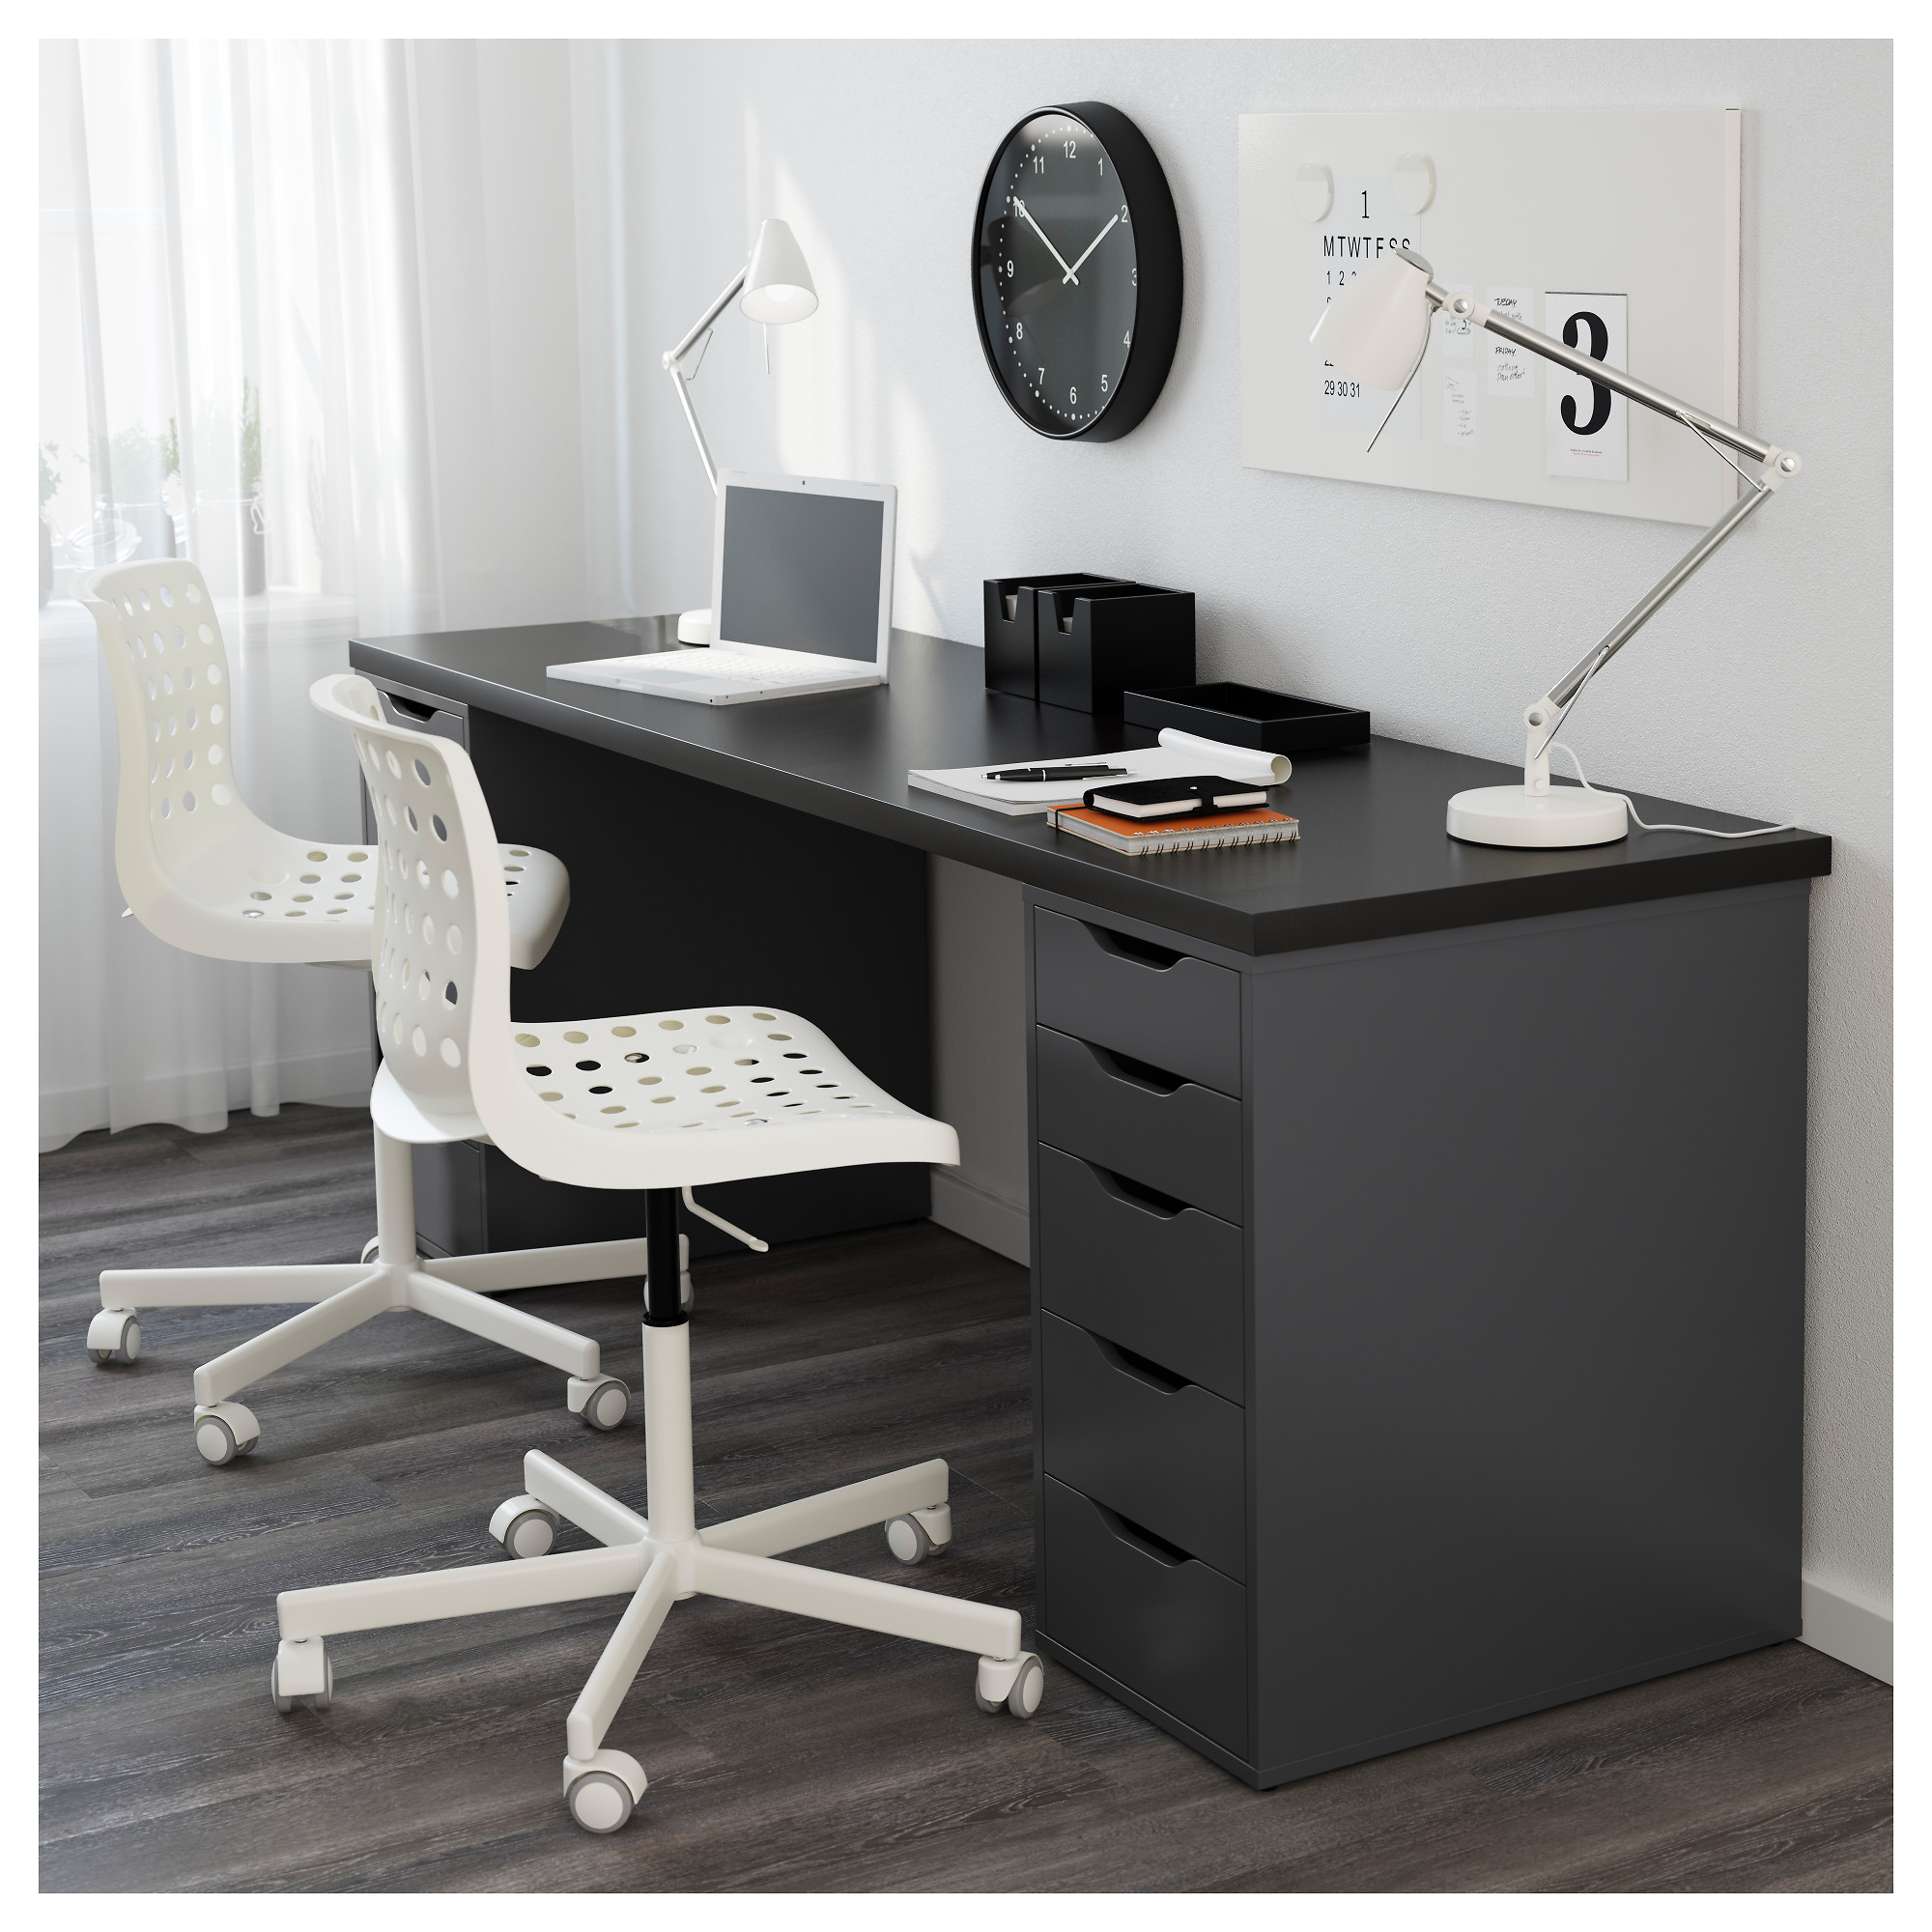 LINNMON / ALEX Table   Black Brown/white   IKEA